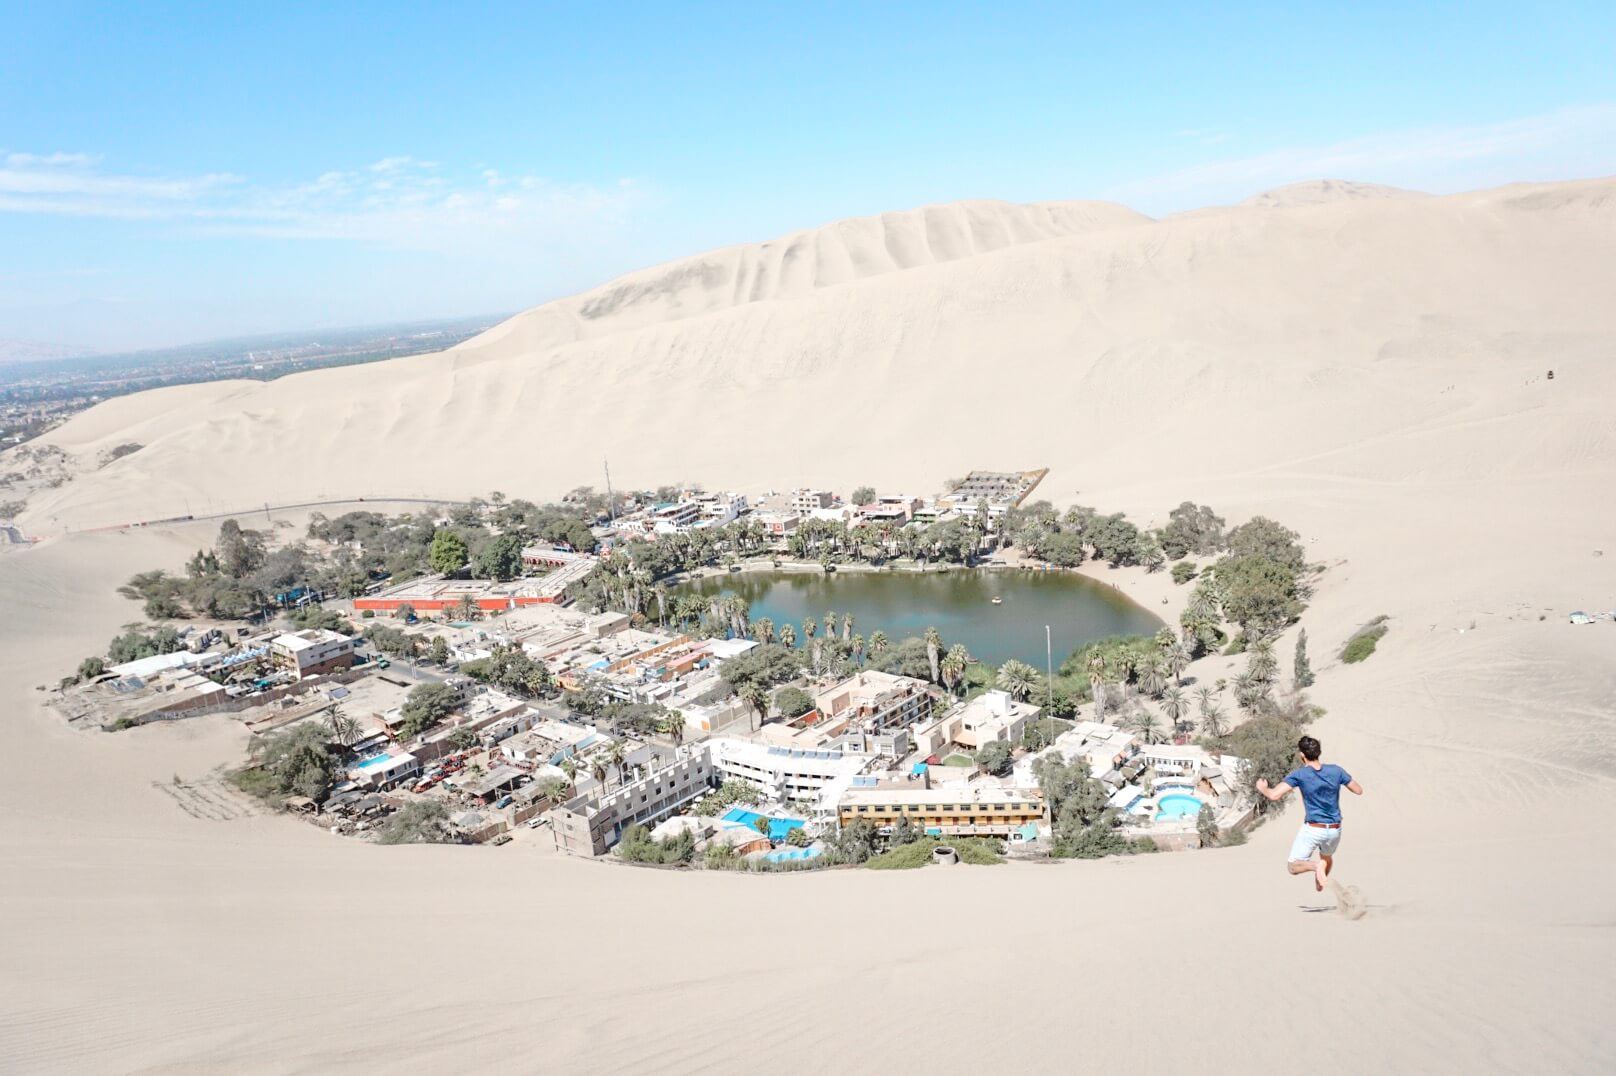 comment se rendre à huacachina